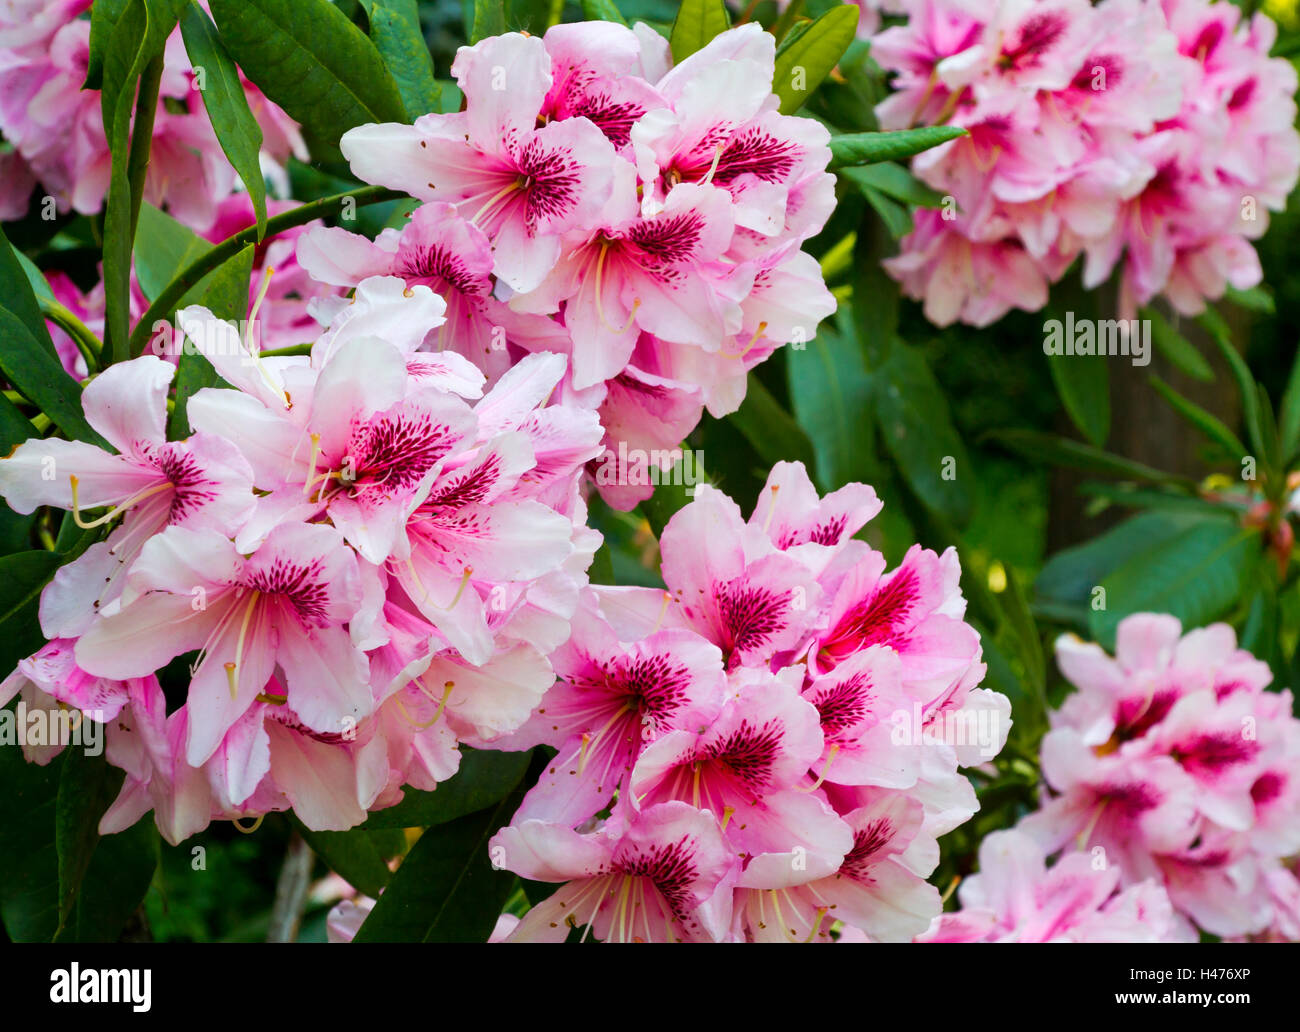 Pink rhododendron flowers growing in a garden in early summer a genus of many species of woody plants in the family - Stock Image